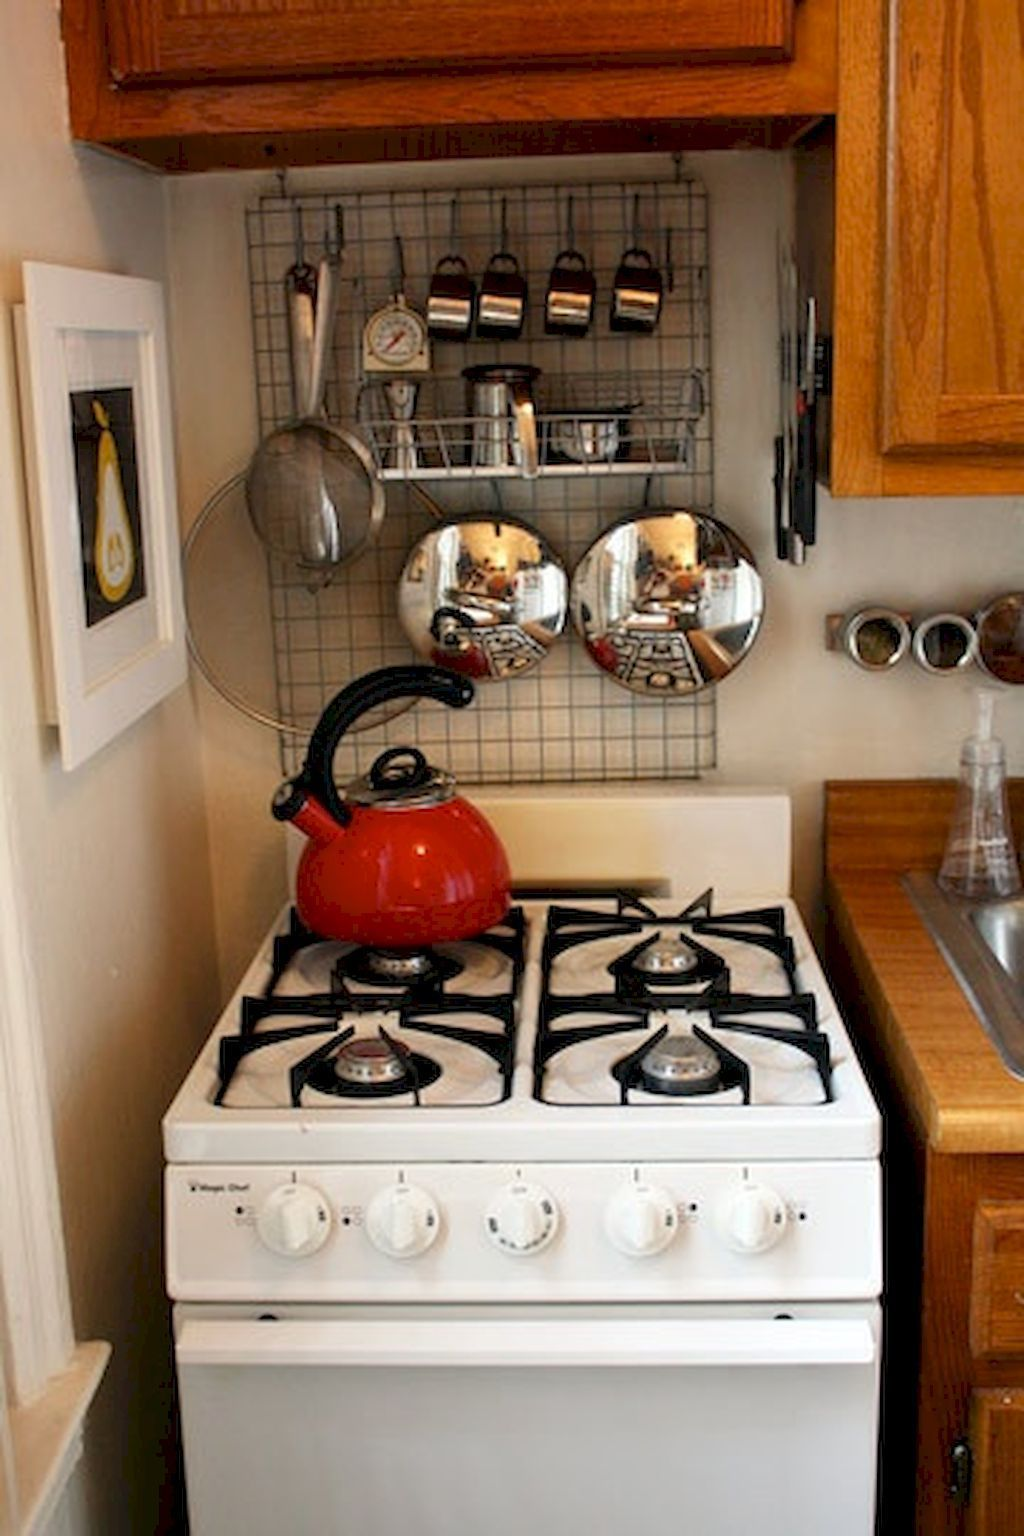 50 cool apartment kitchen rental decor ideas and makeover 13 small apartment kitchen small on kitchen organization small apartment id=35435